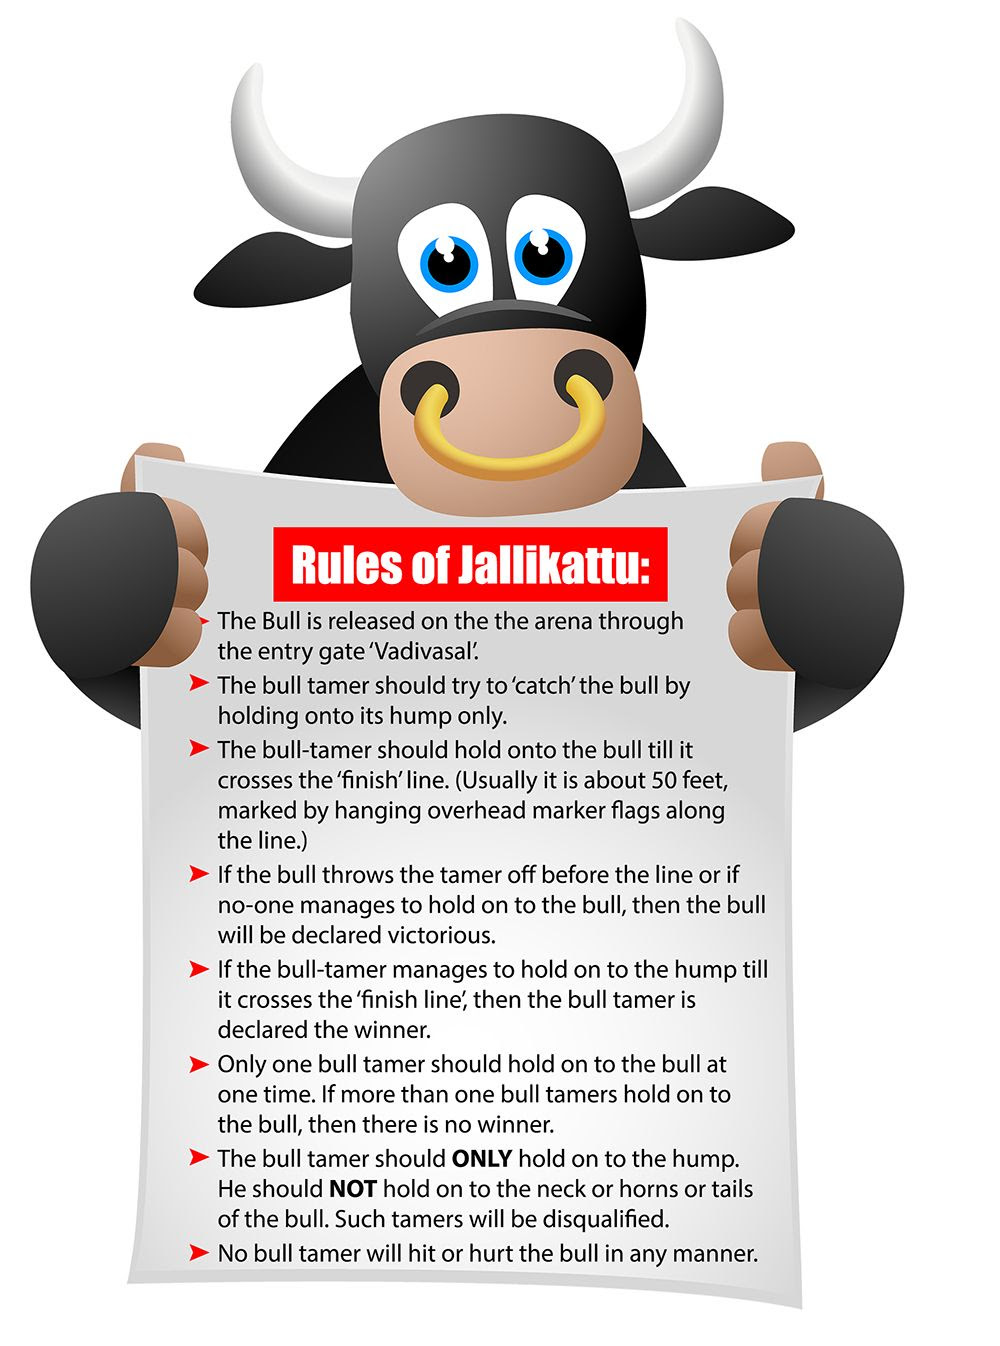 Bulls Cannot Be Hurt Is The Golden Rule Of Jallikattu But Who